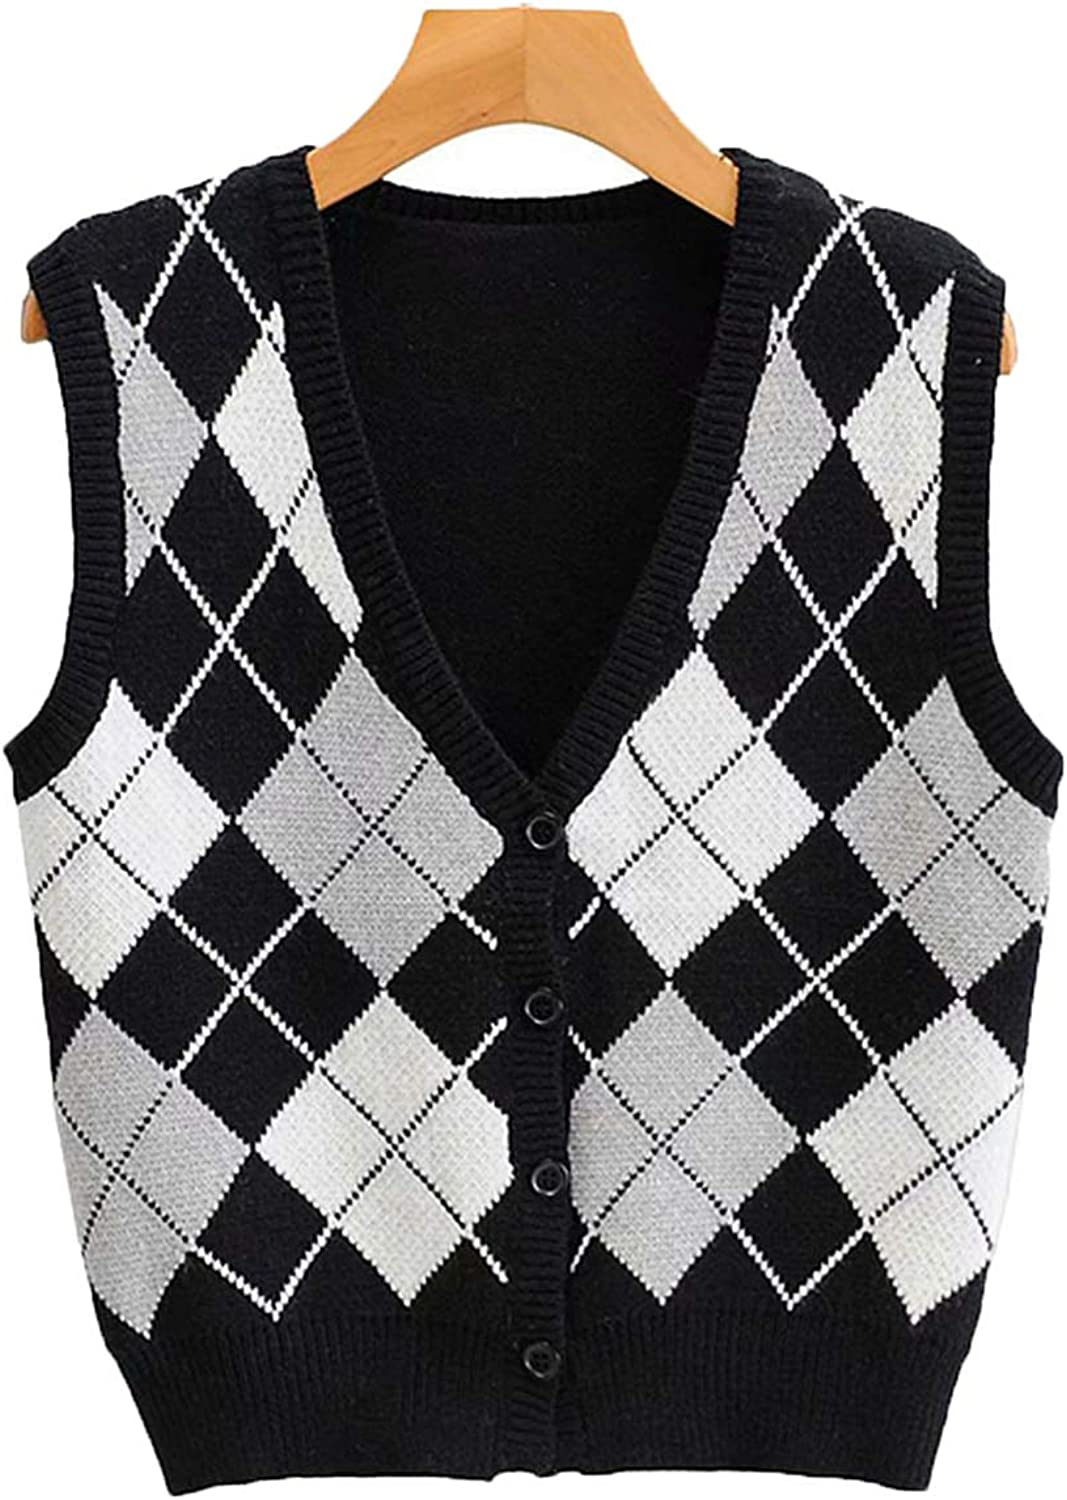 Plaid Knitted Button Sweater Vest Female Style Y2K Clothes V Neck Casual 90s Knitwear